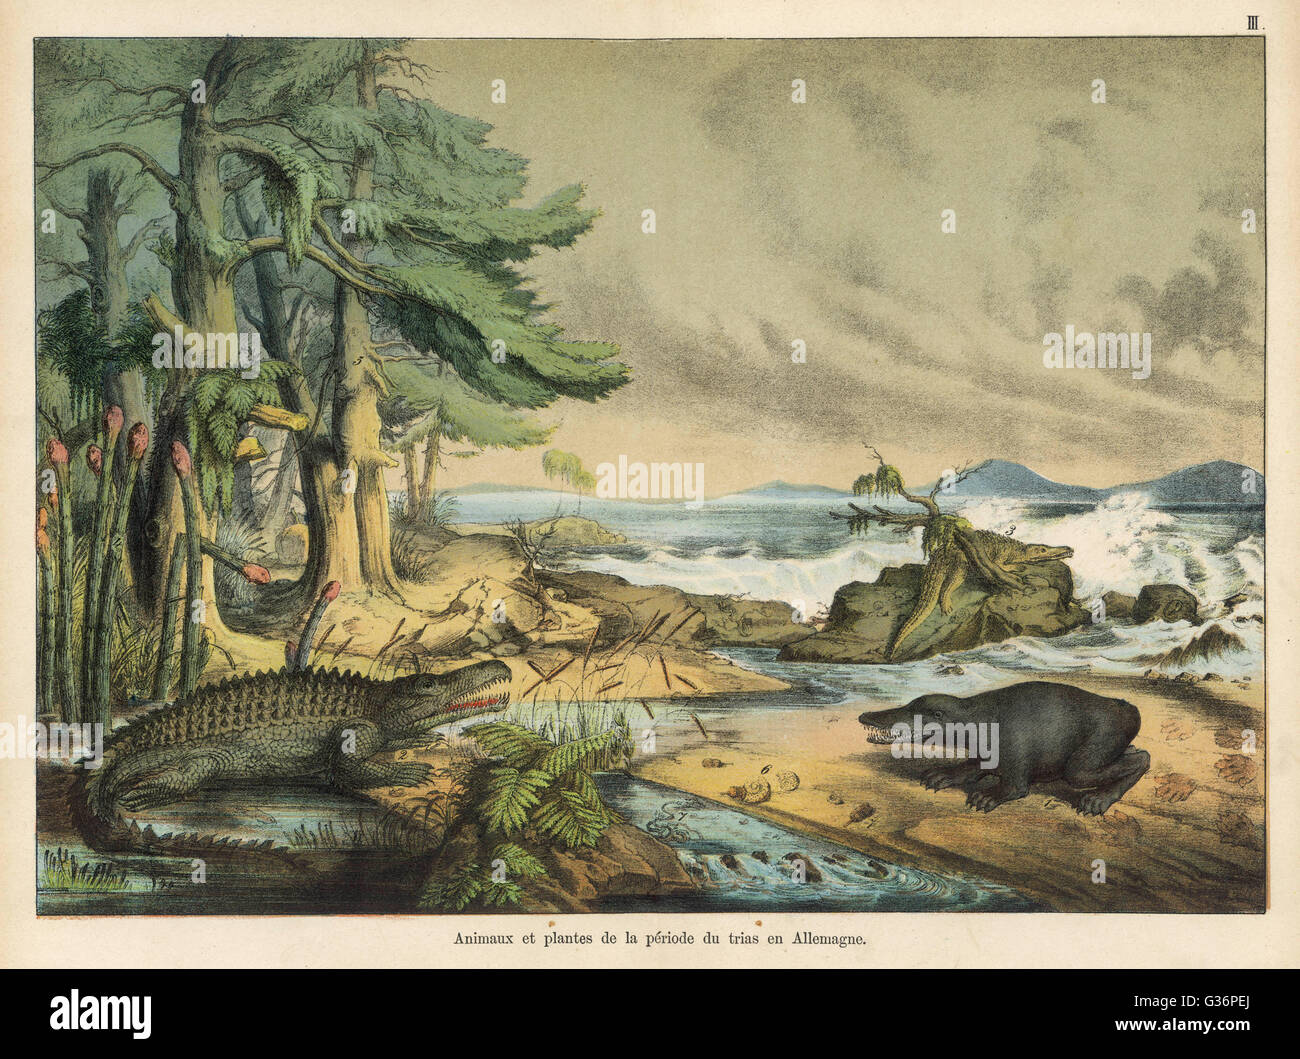 German landscape, with animals, during the Triassic Era.          Date: 245-208 million BC - Stock Image